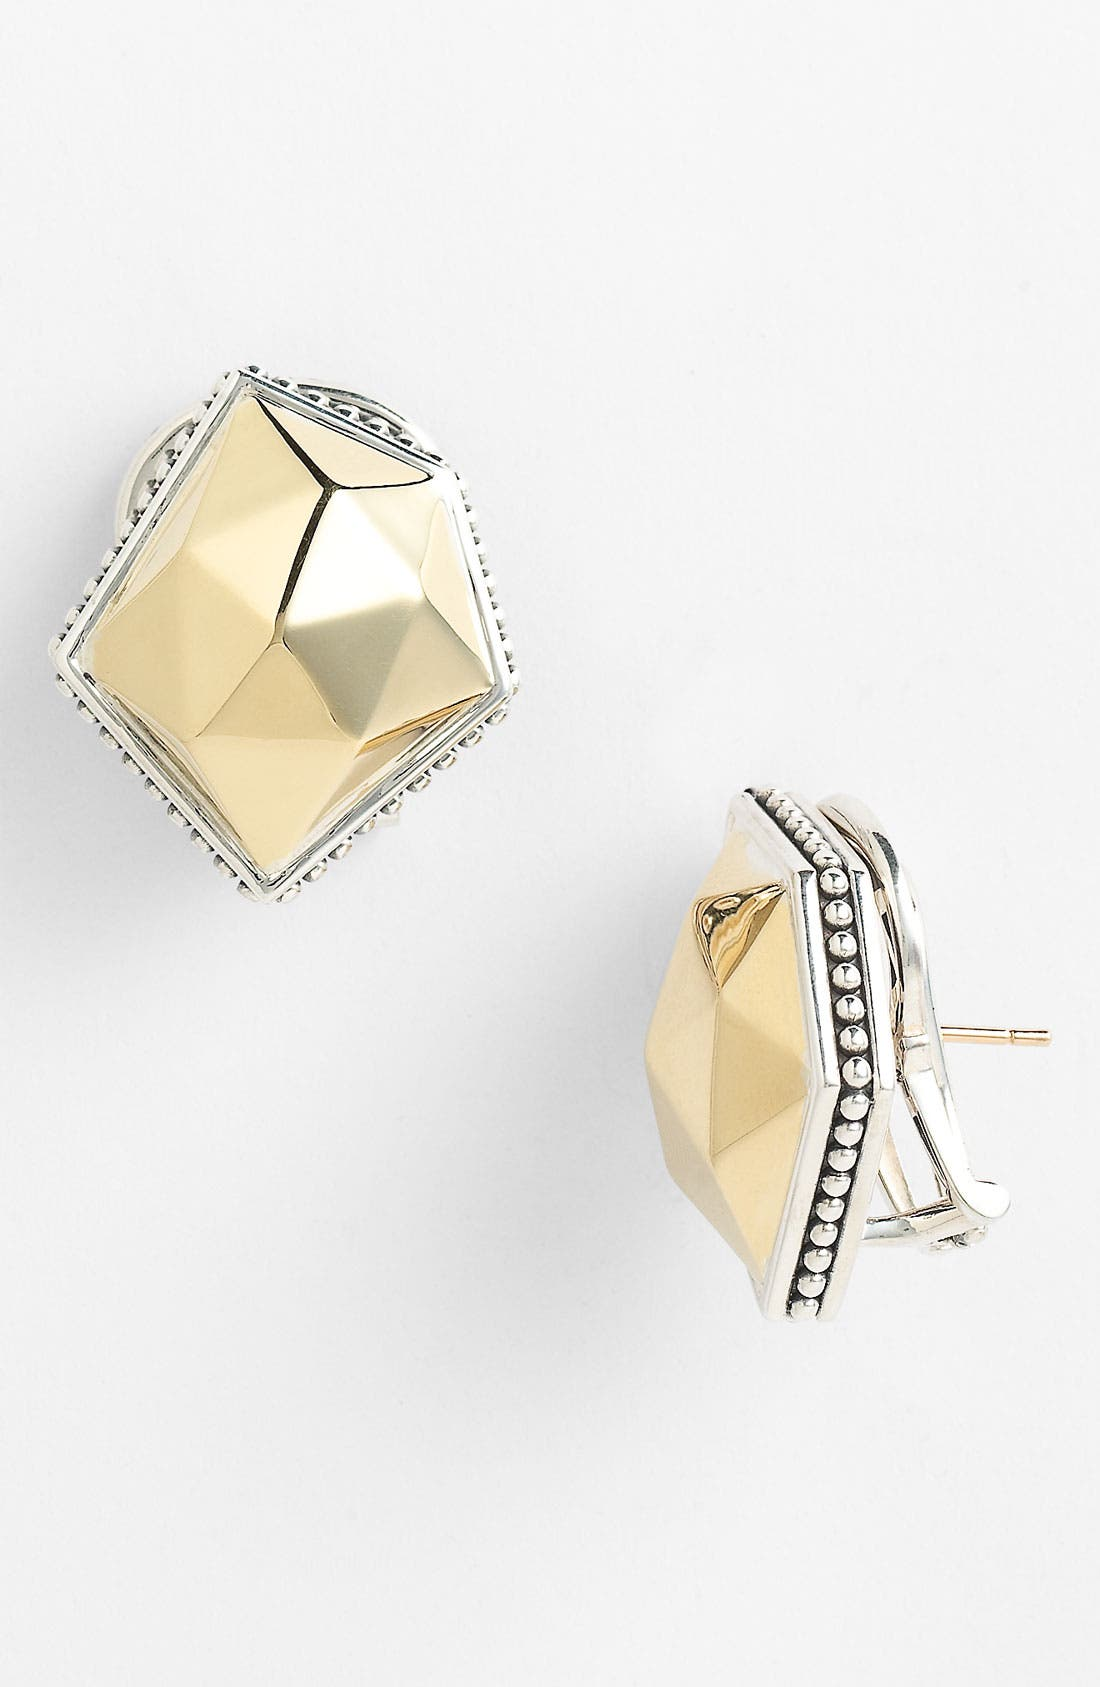 Alternate Image 1 Selected - LAGOS 'Rocks' Medium Angled Two Tone Earrings